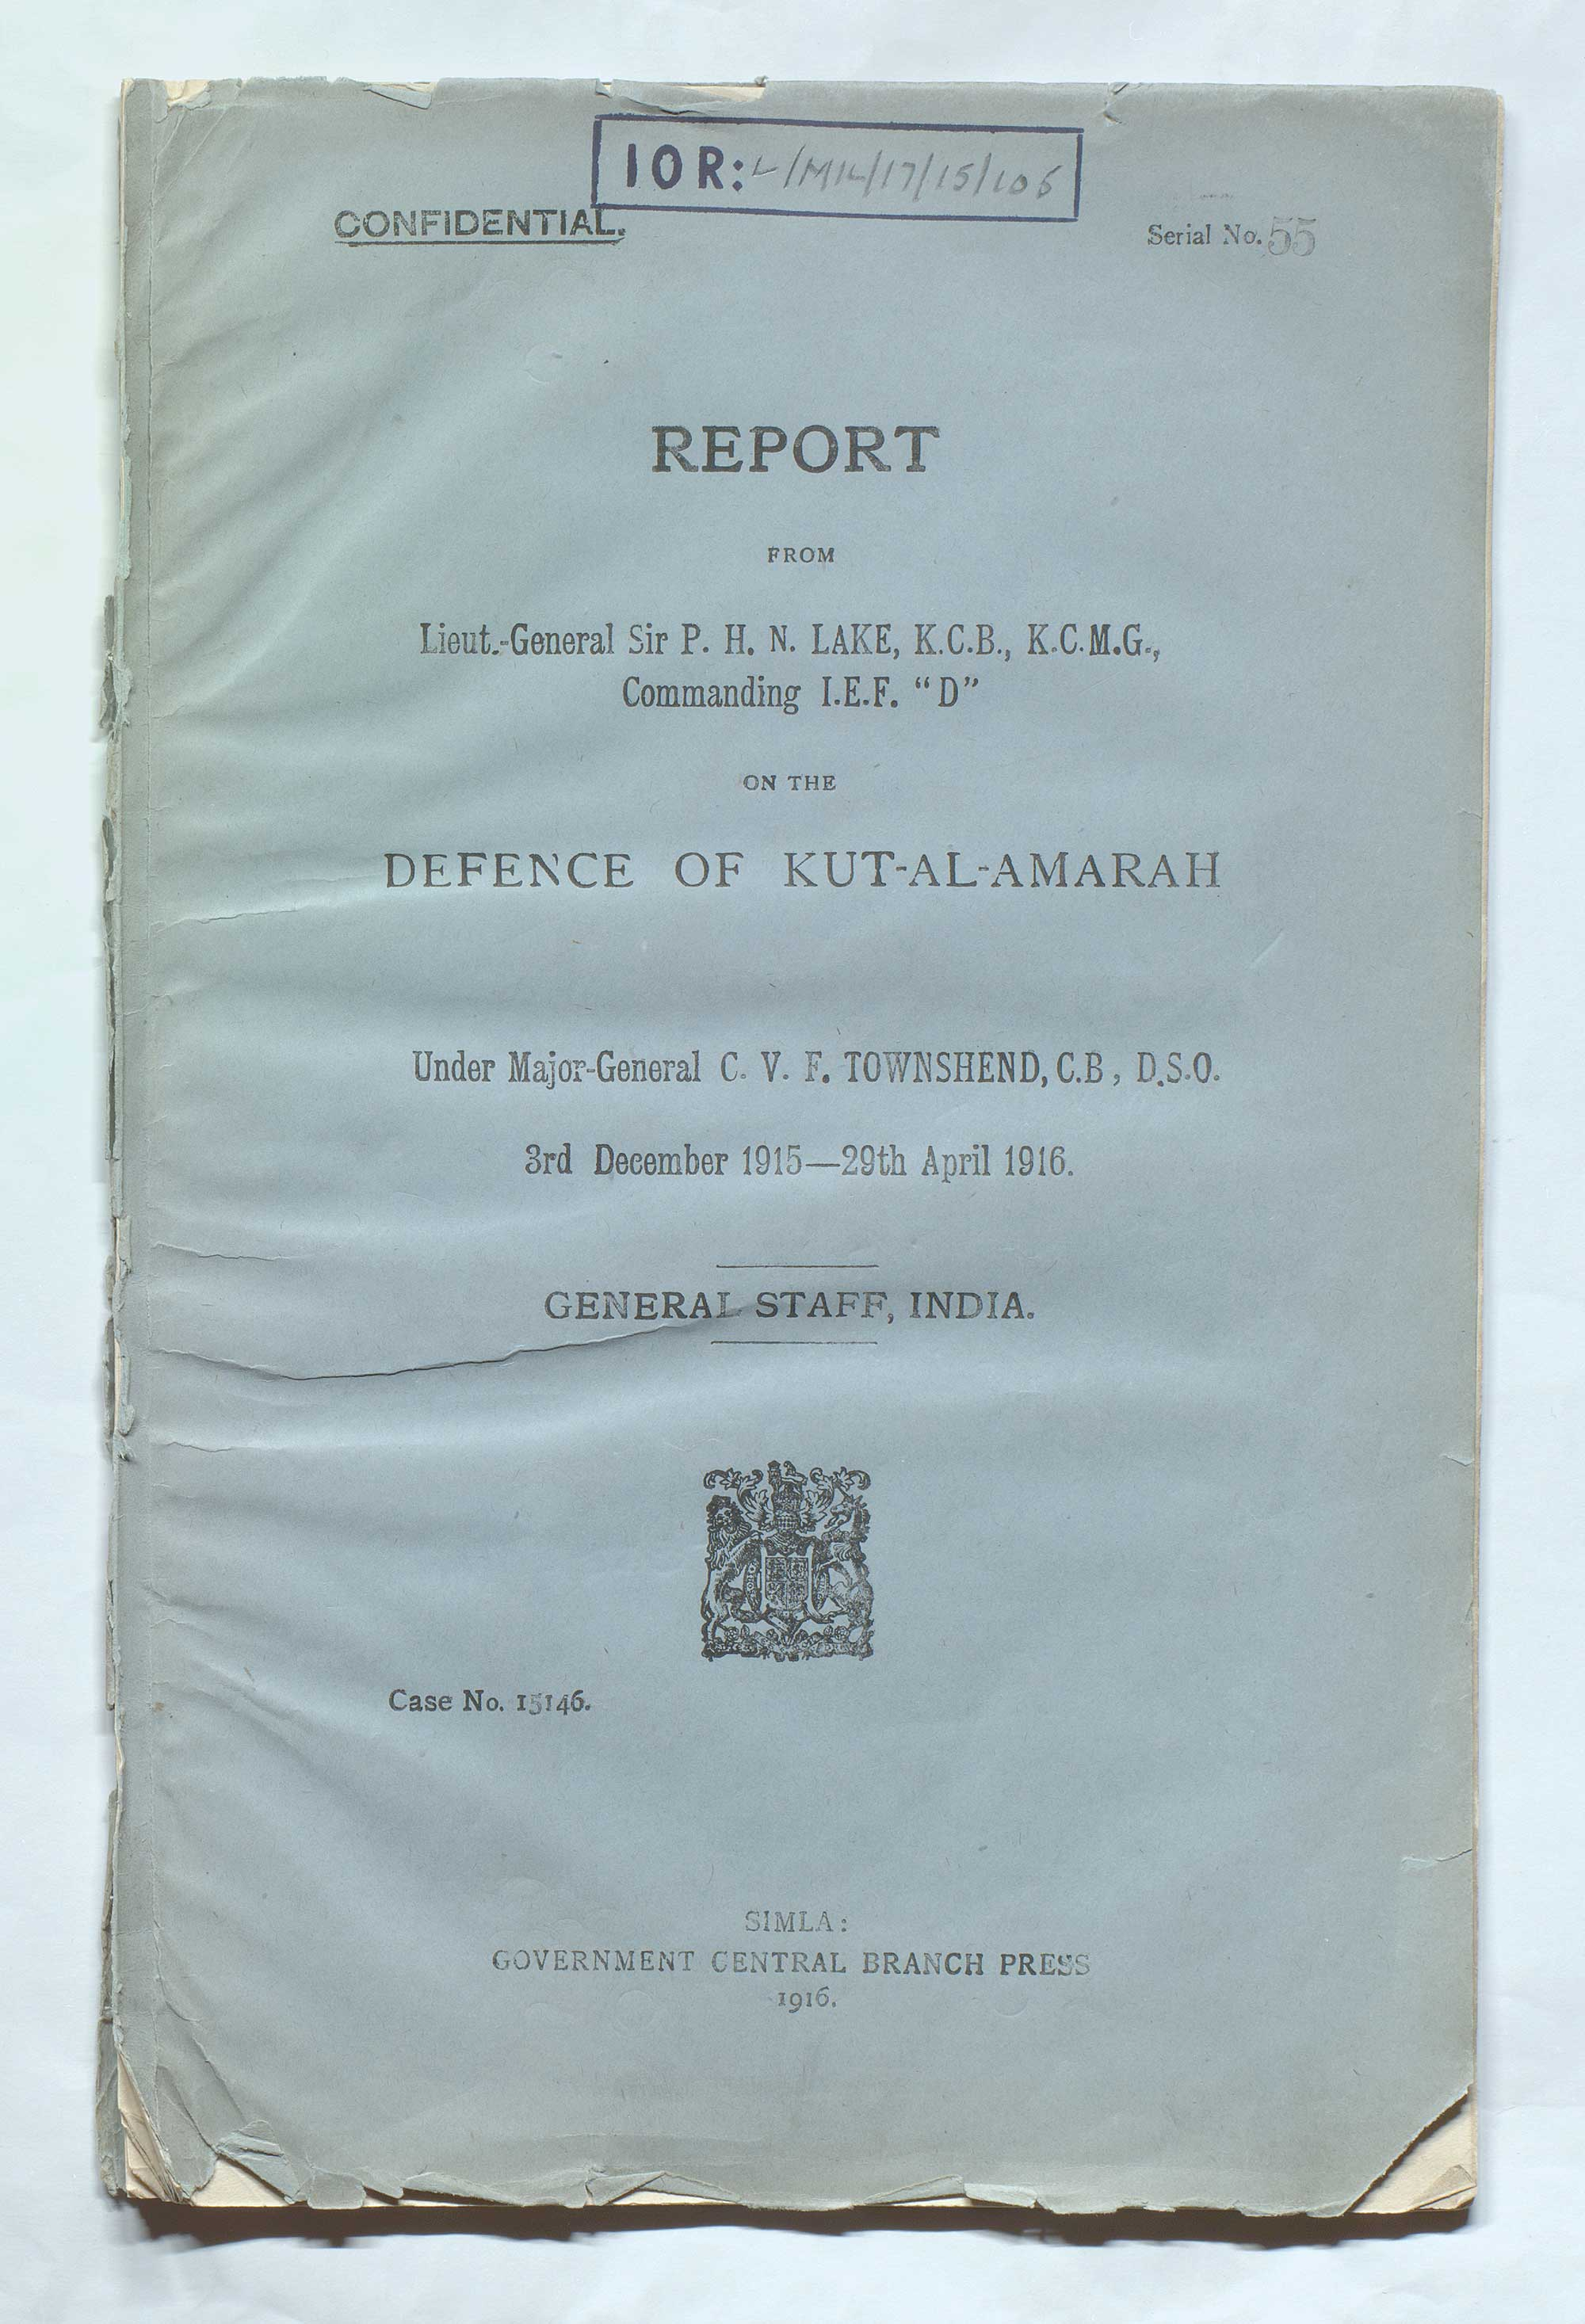 Report on the defence of Kut-al-Amarah under Maj-Gen Charles Vere Ferrers Townshend 3rd December 1915-29th April 1916 Lt-Gen Sir Percy Henry Noel Lake, Commanding Indian Expeditionary Force 'D' 1916